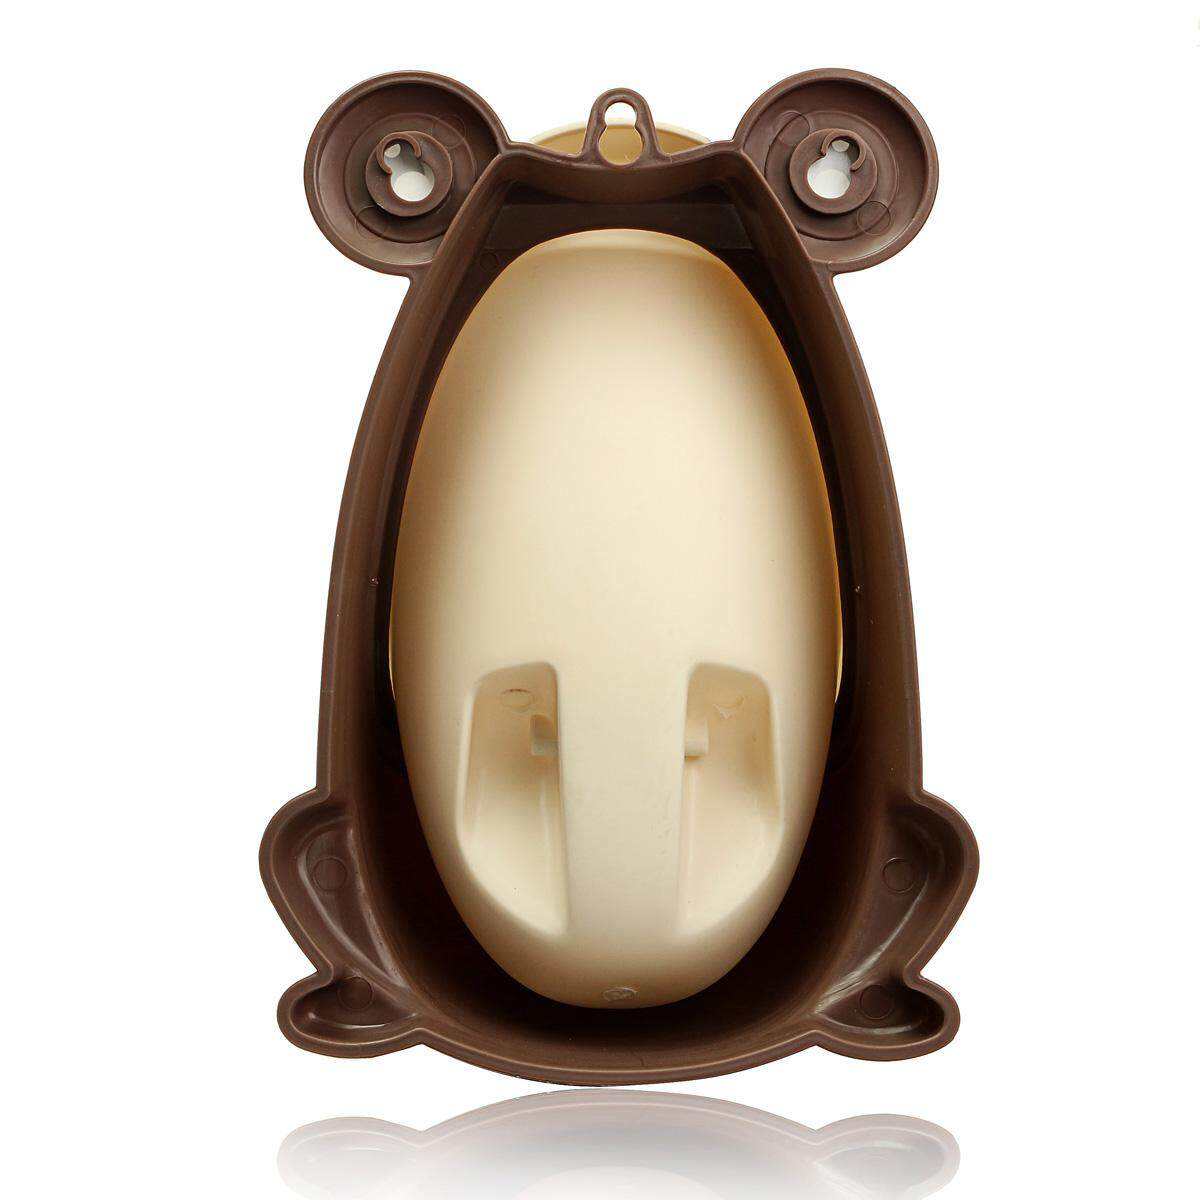 Children Toddler Kid Baby Boy Frog Potty Urinal Pee Toilet Bathroom Trainingcoffee By Moonbeam.